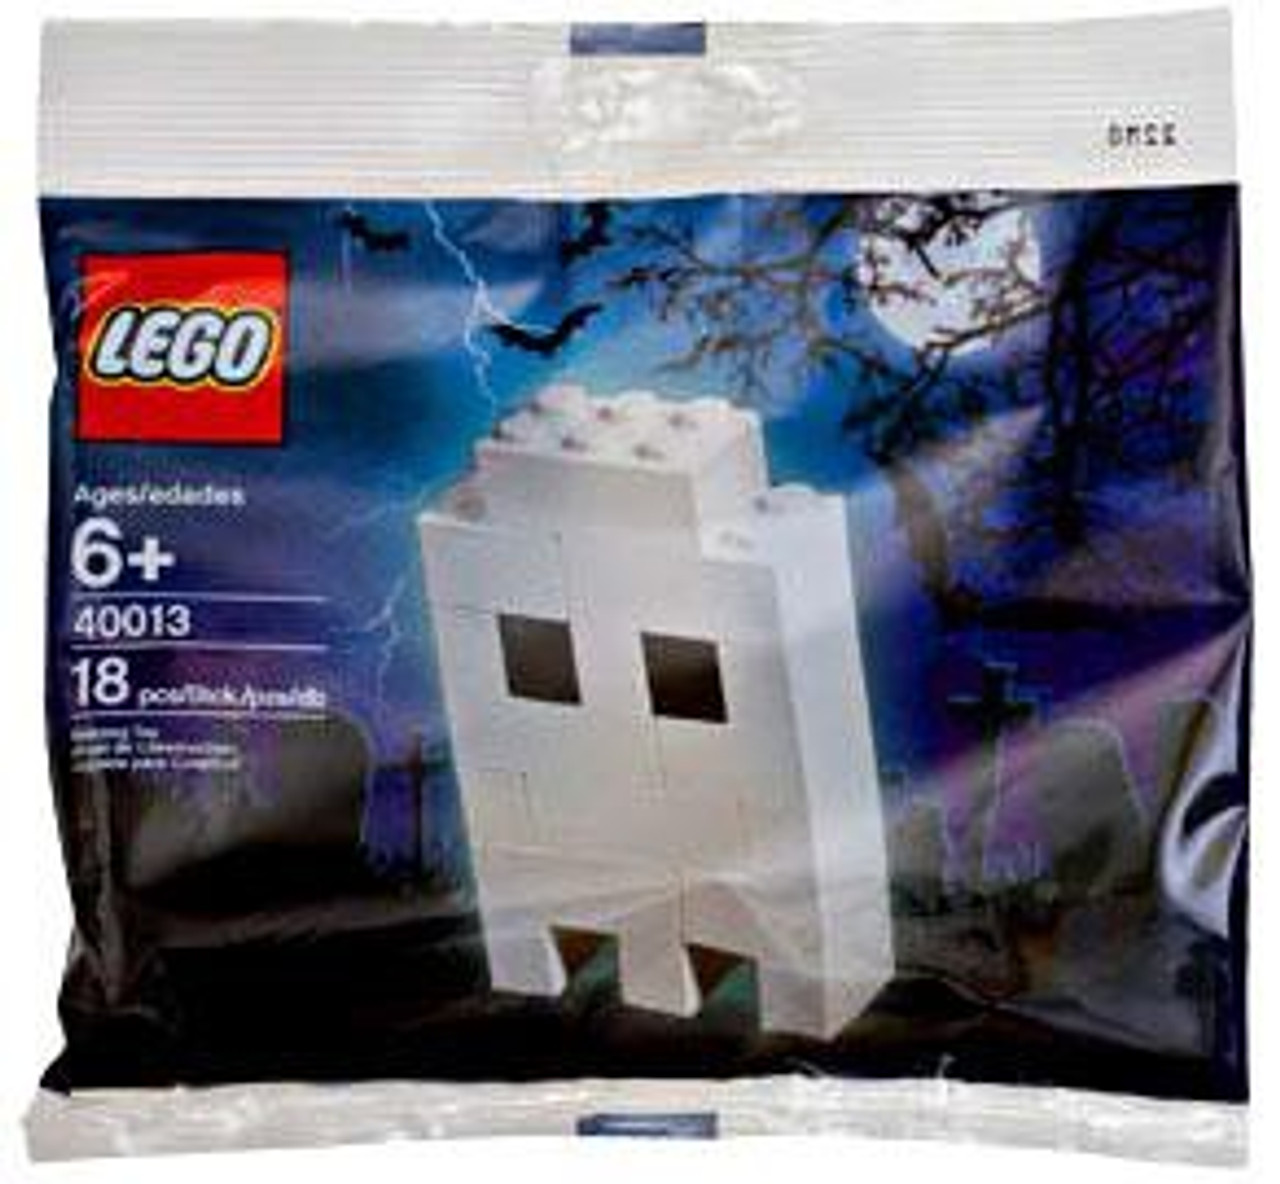 LEGO Exclusives Ghost Exclusive Mini Set #40013 [Bagged]